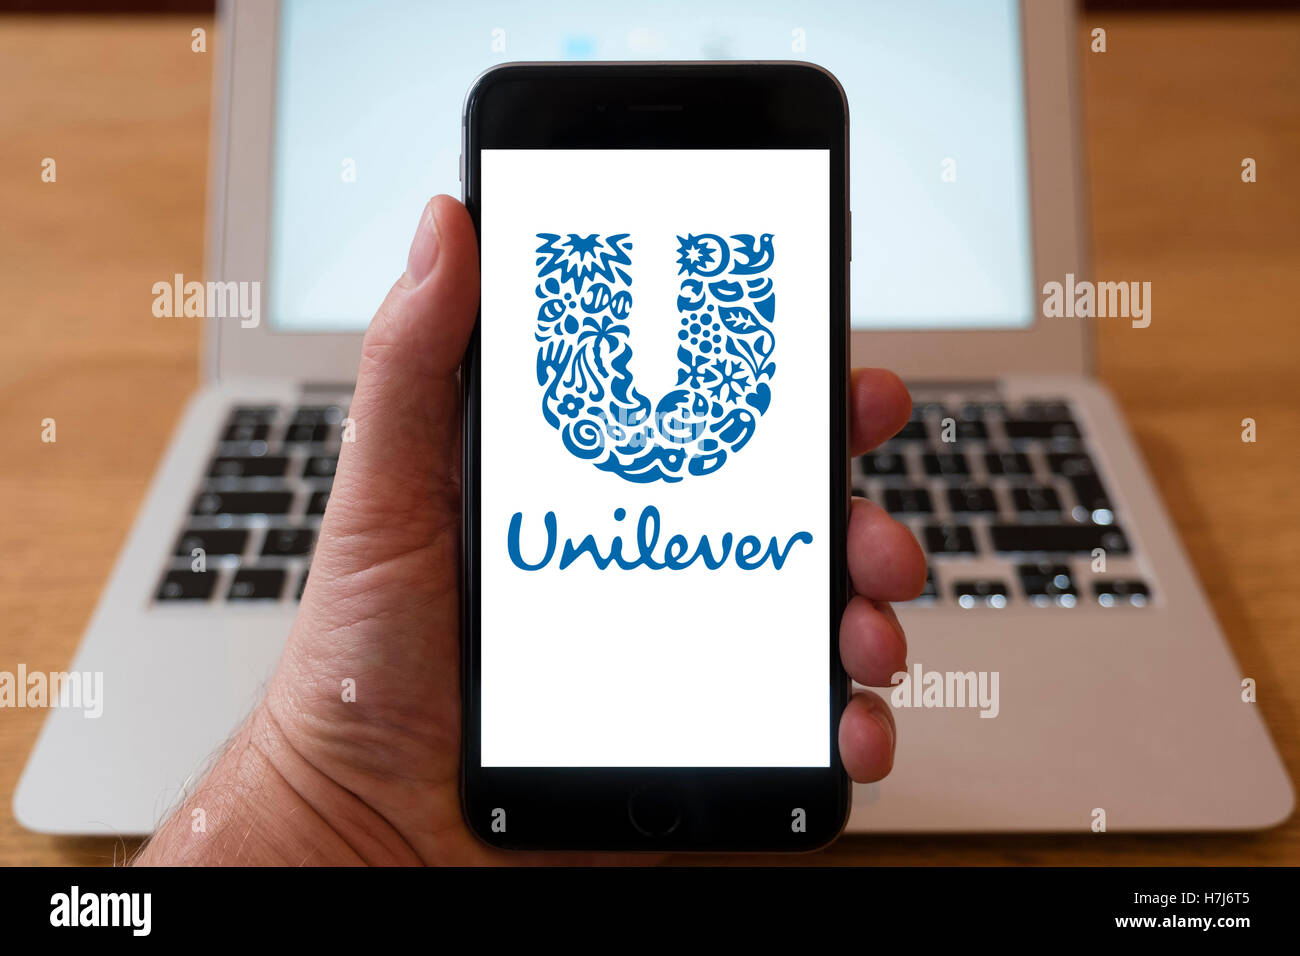 Using iPhone smart phone to display logo of Unllever multinational conglomerate - Stock Image